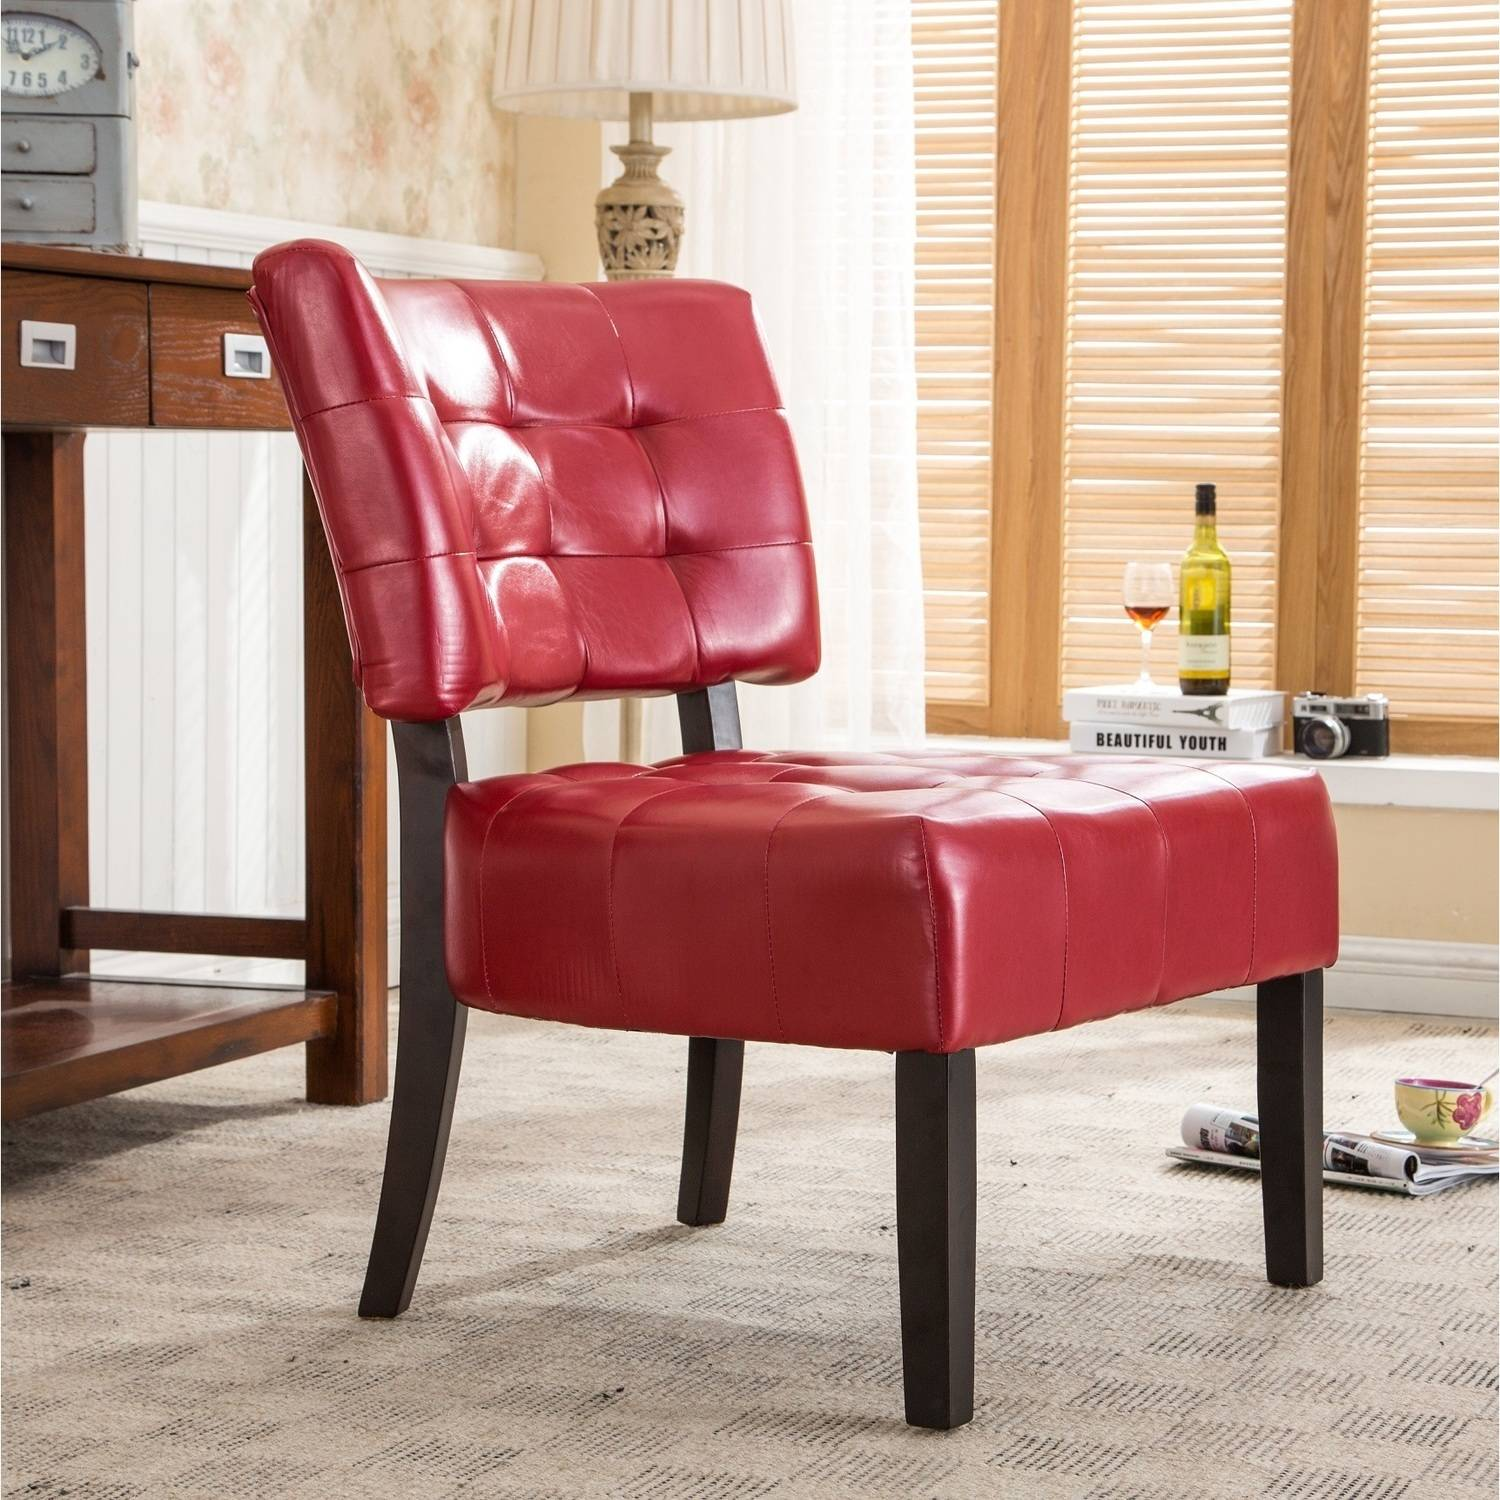 Roundhill Blended Leather Tufted Accent Chair with Oversized Seating, Multiple Colors Available